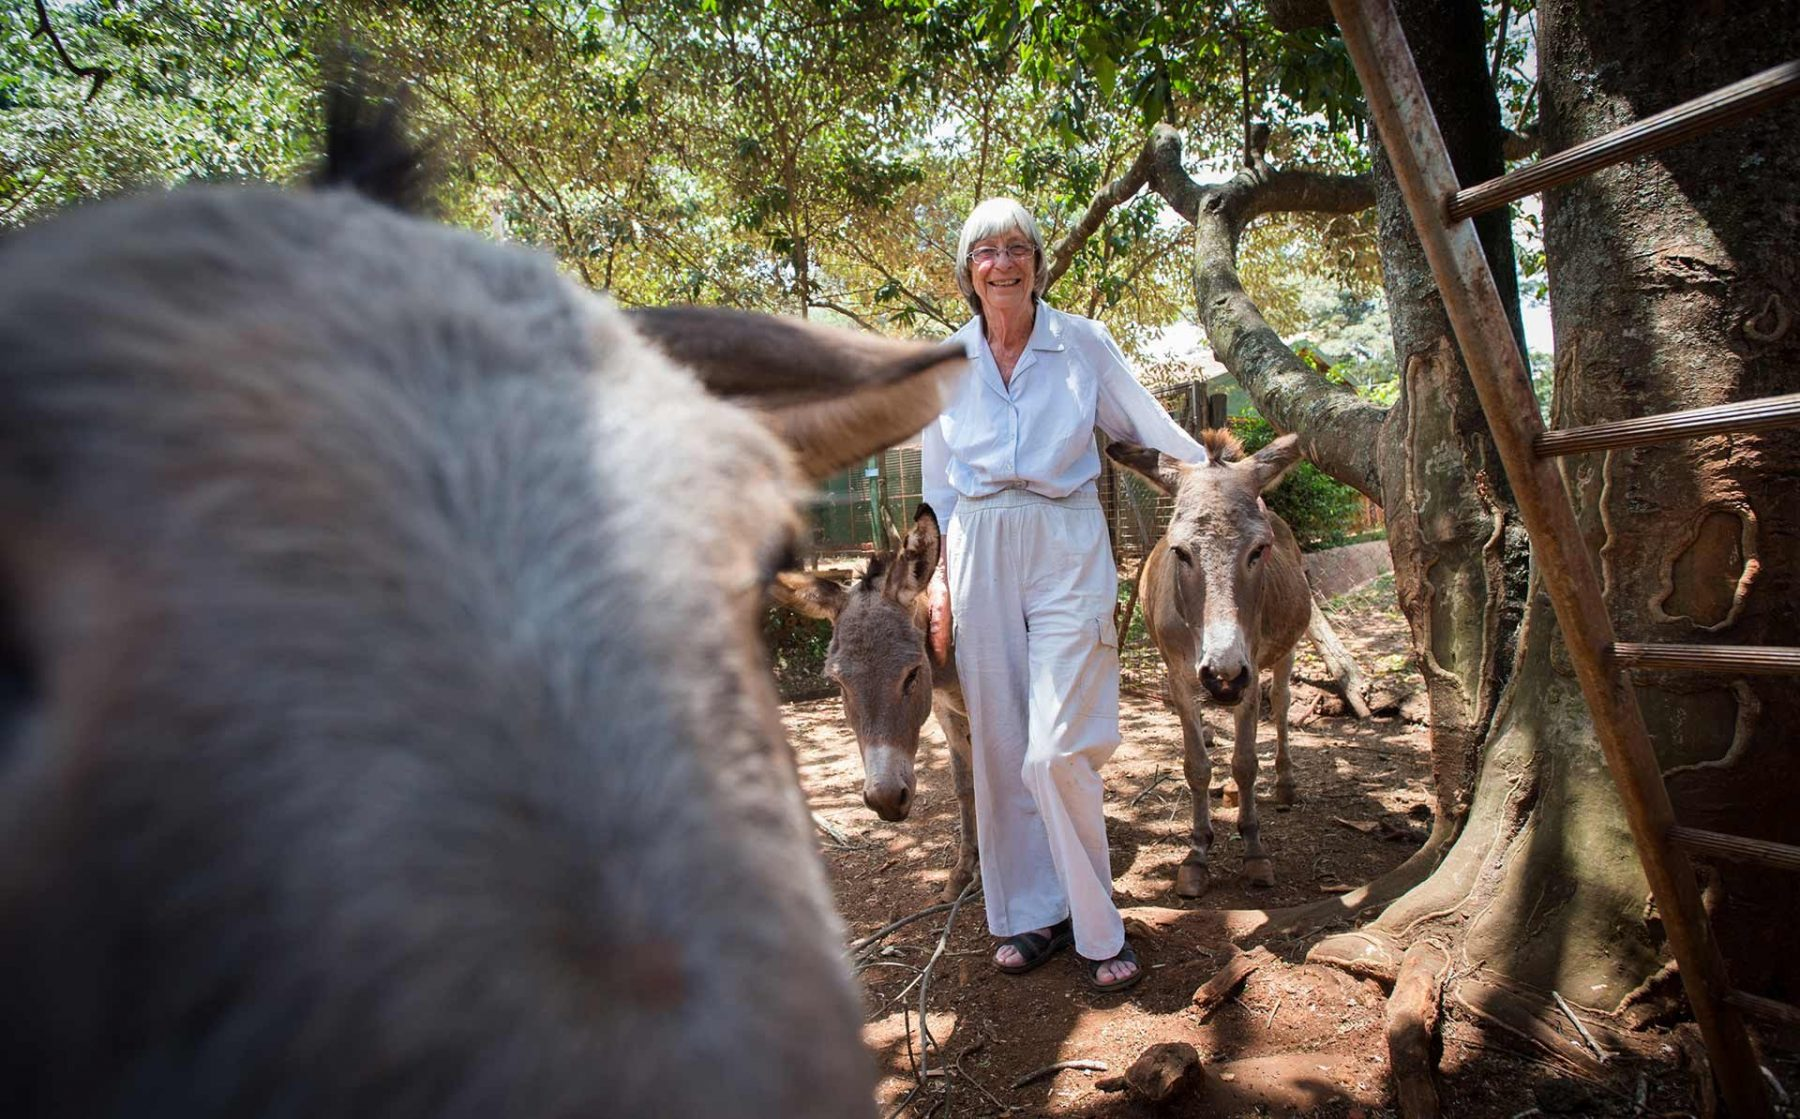 Jean Gilchrist, MBE, with rescued donkeys at the Kenyan SPCA in Nairobi, where she has worked for over 30 years. Kenya, 2016